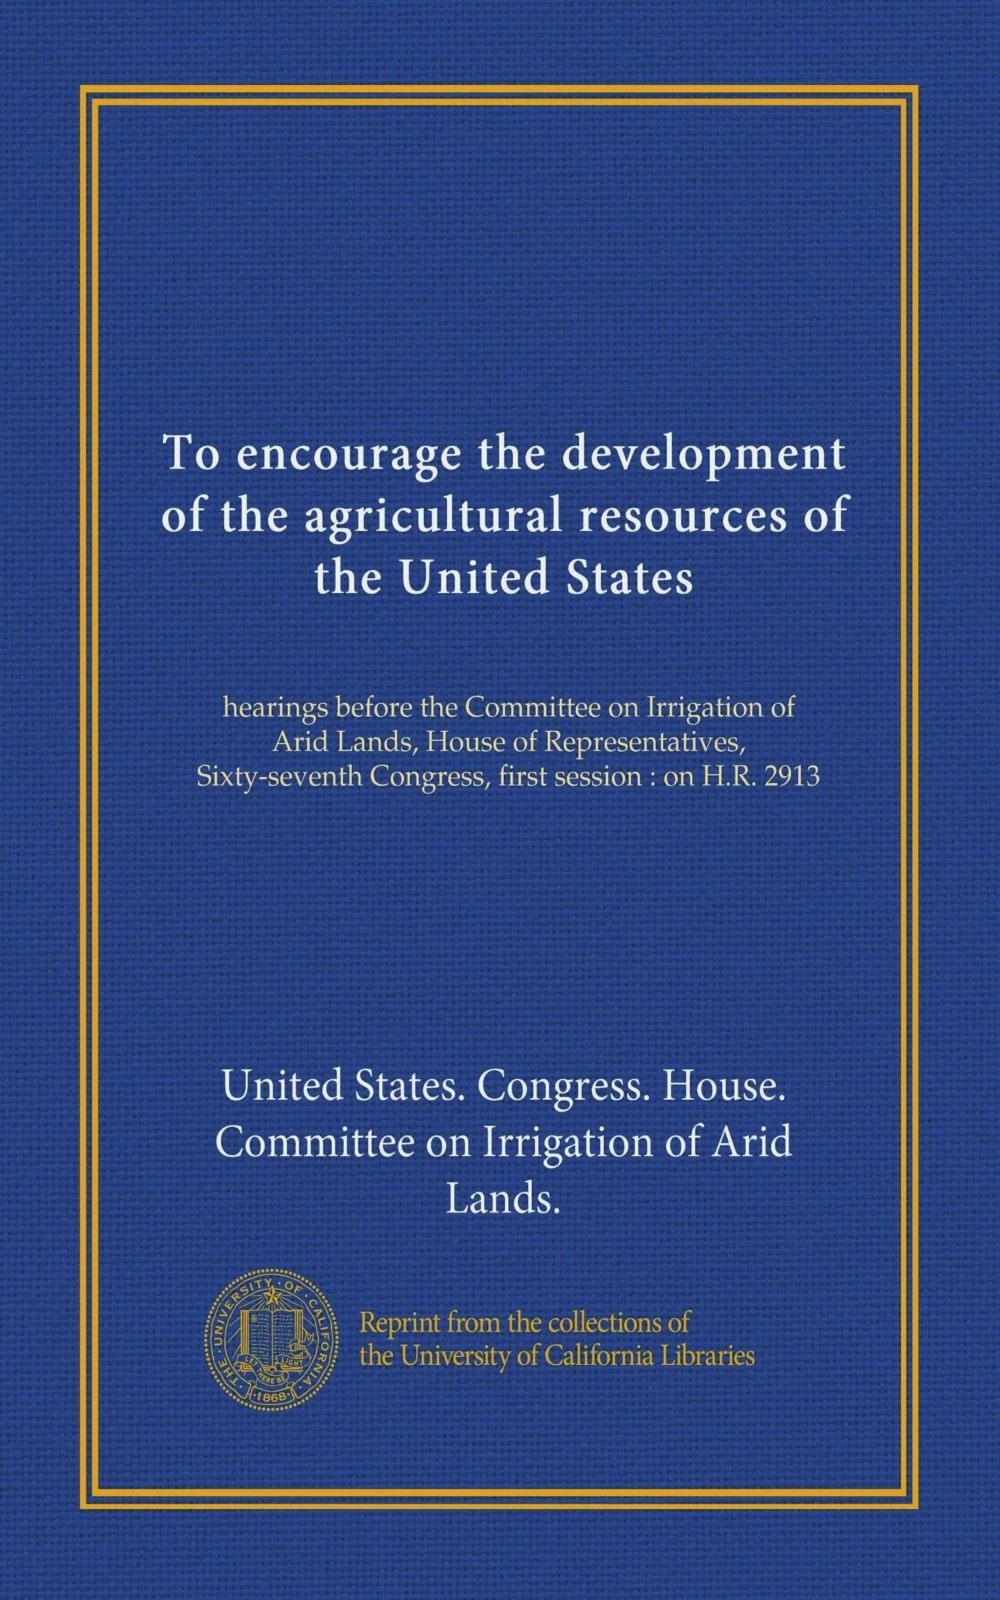 To encourage the development of the agricultural resources of the United States: hearings before the Committee on Irrigation of Arid Lands, House of ... Congress, first session : on H.R. 2913